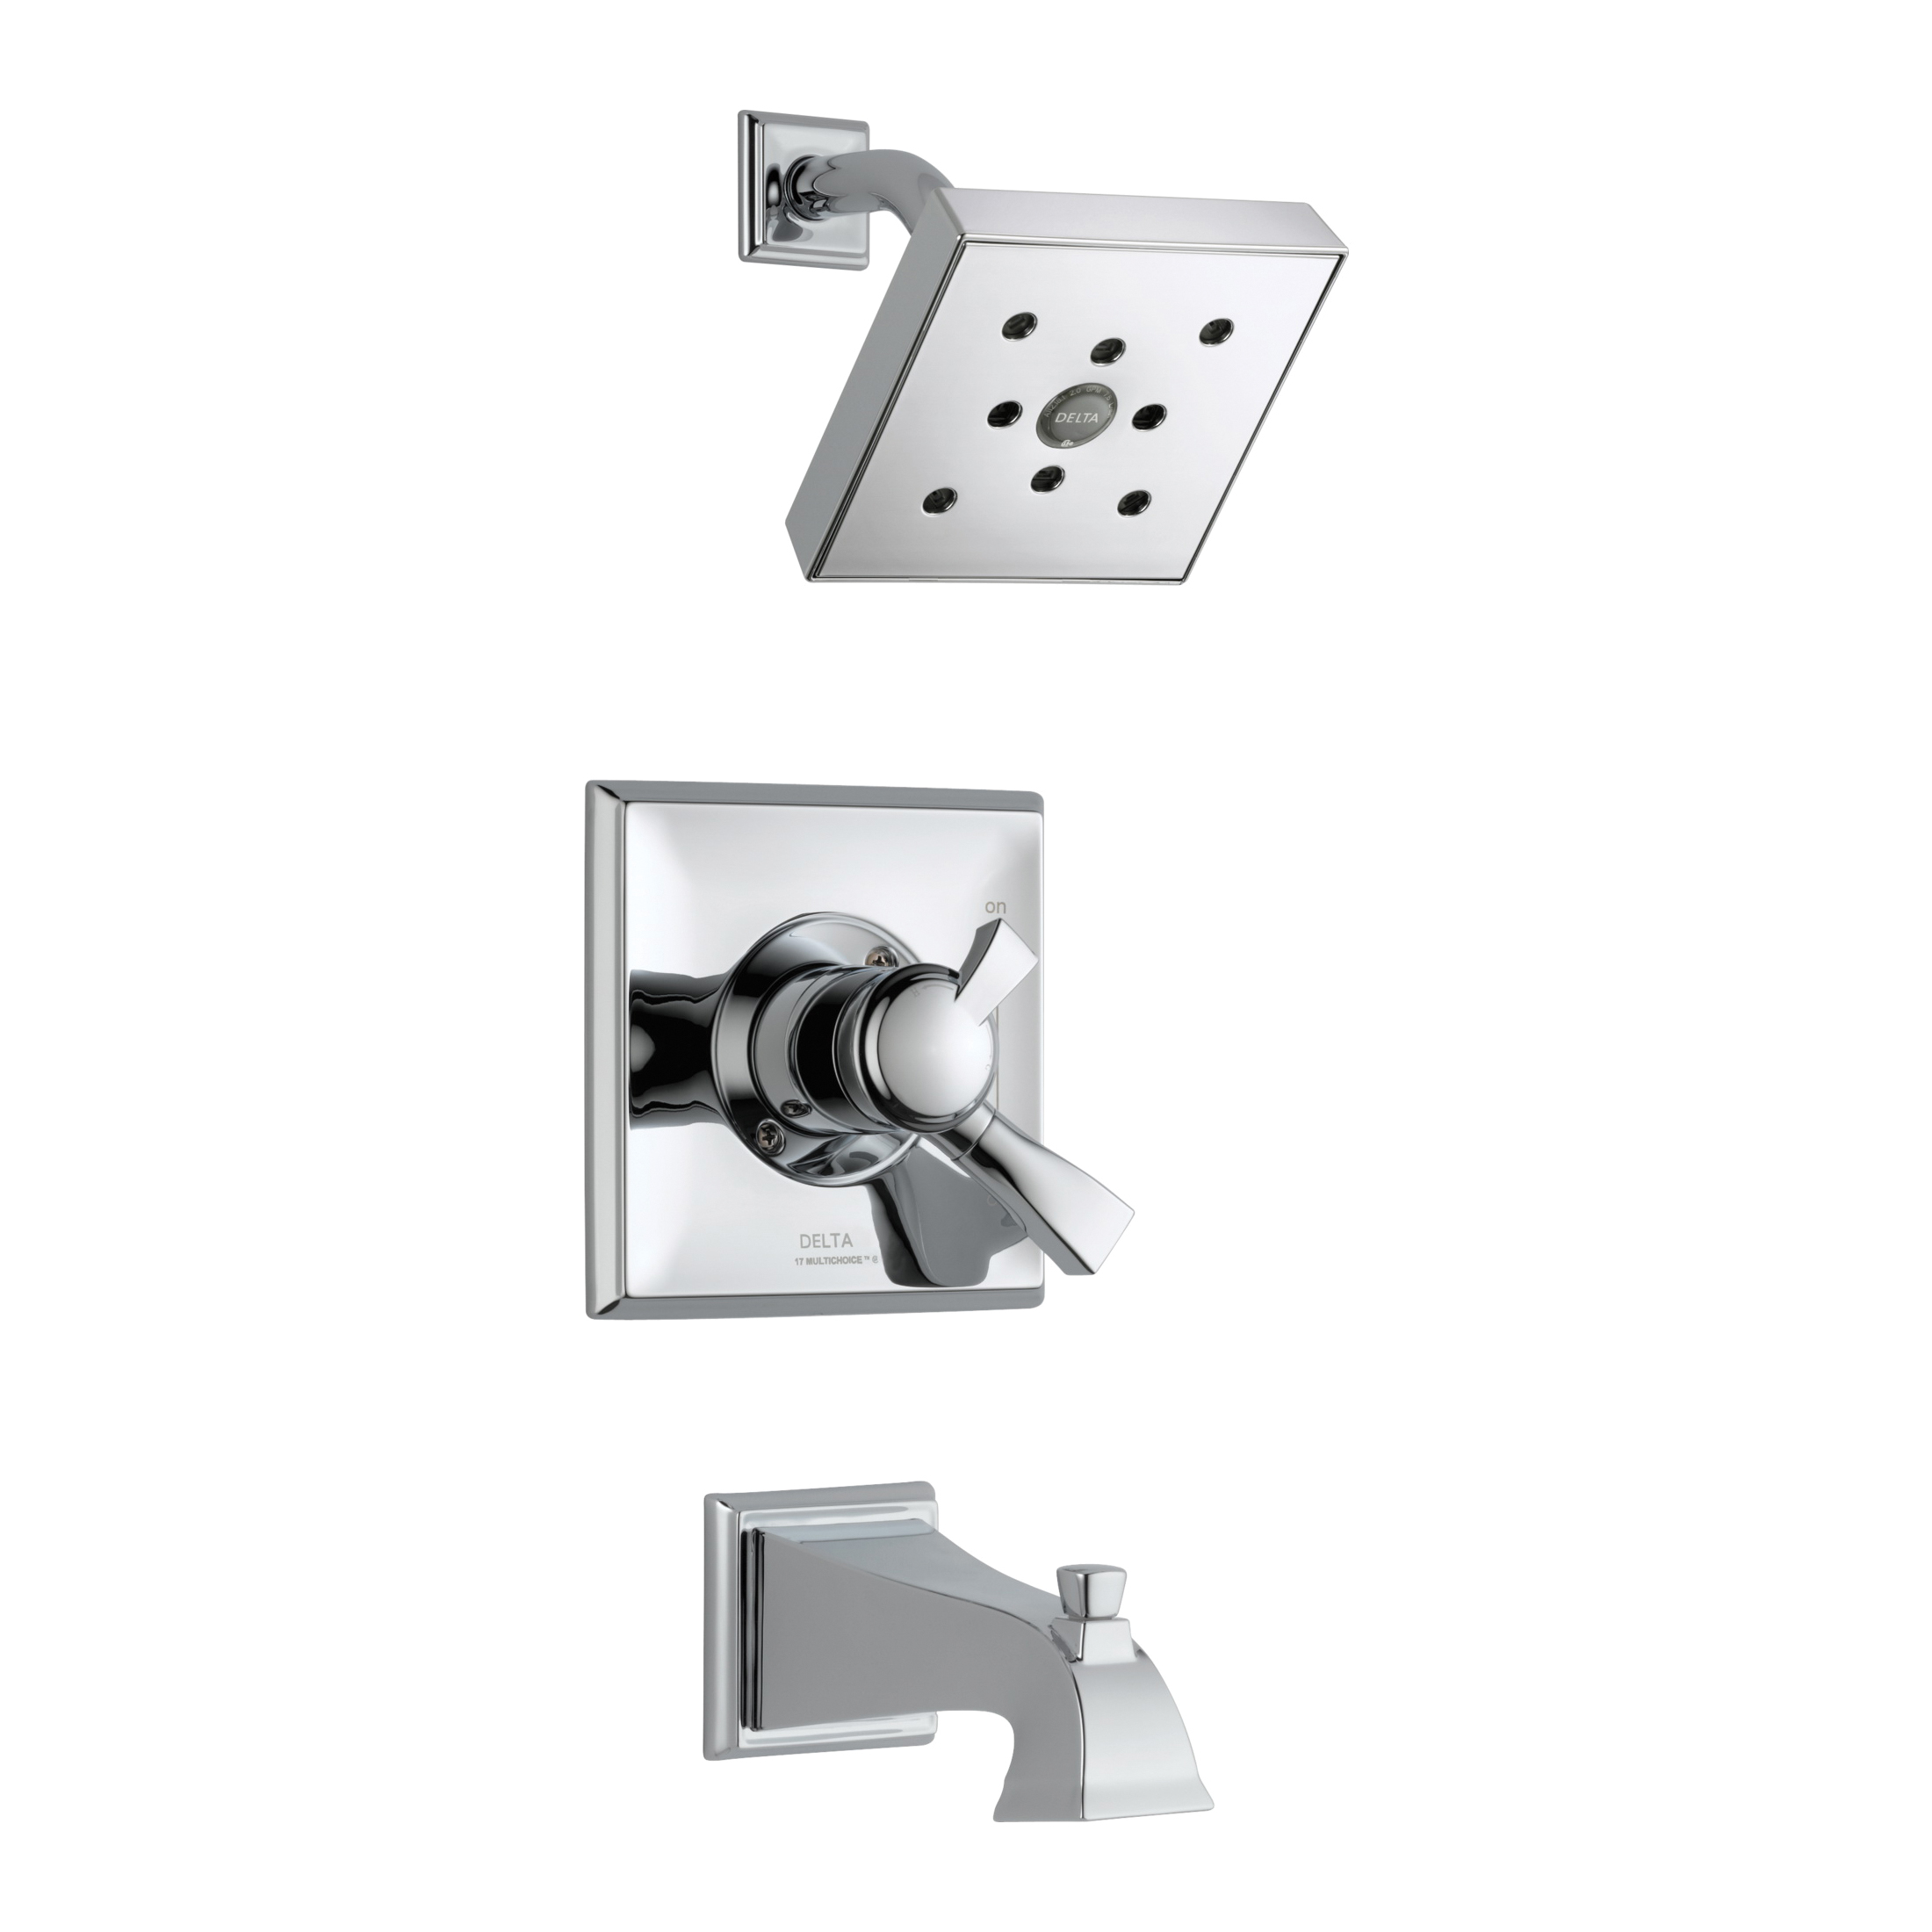 DELTA® T17451-H2O Monitor® 17 Tub and Shower Trim, 1.75 gpm Shower, Hand Shower Yes/No: No, Chrome Plated